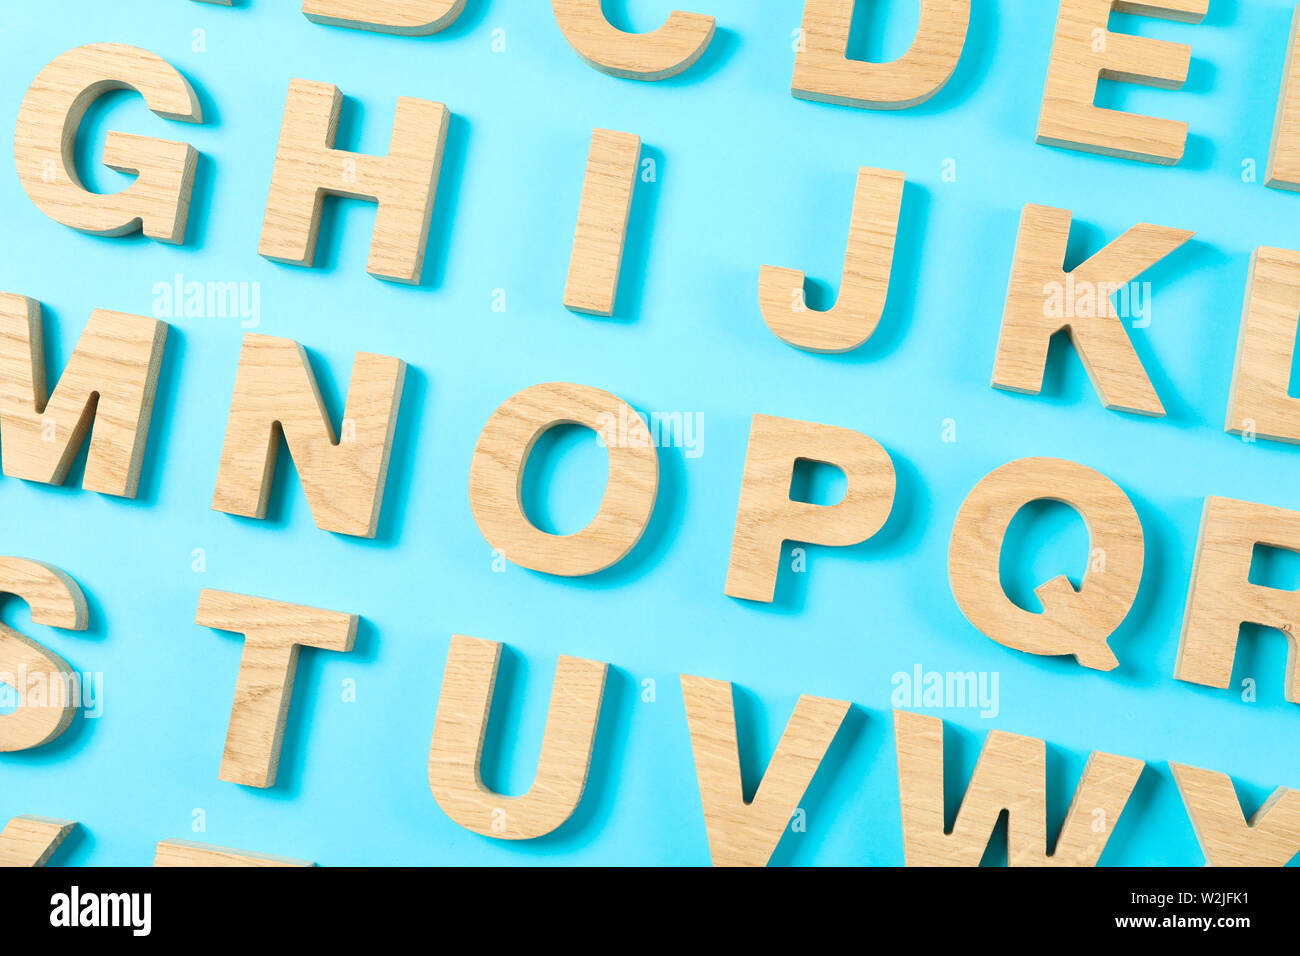 Wooden Letters Of English Alphabet On Color Background Stock Photo